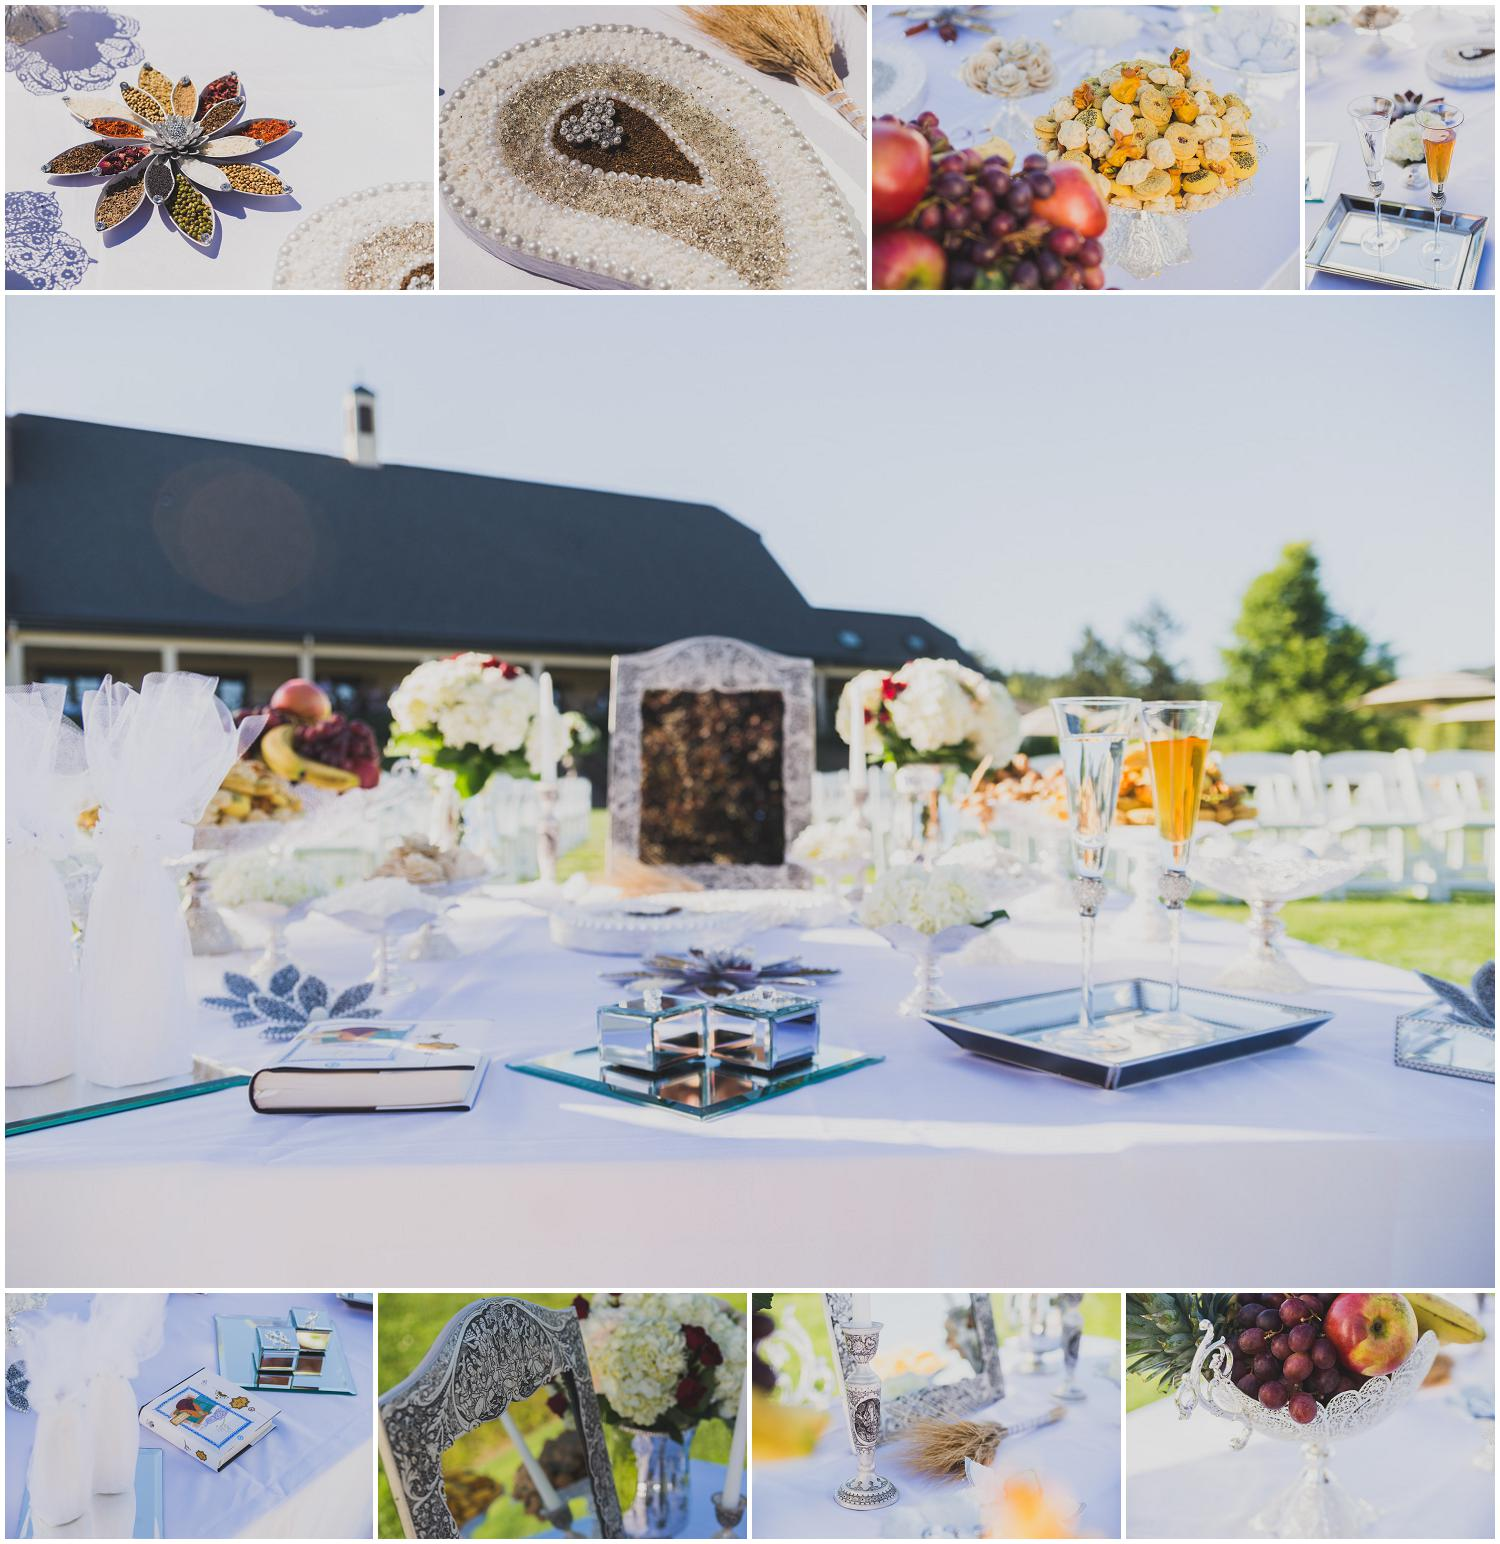 ceremony table details for persian american blended wedding at zenith vineyards